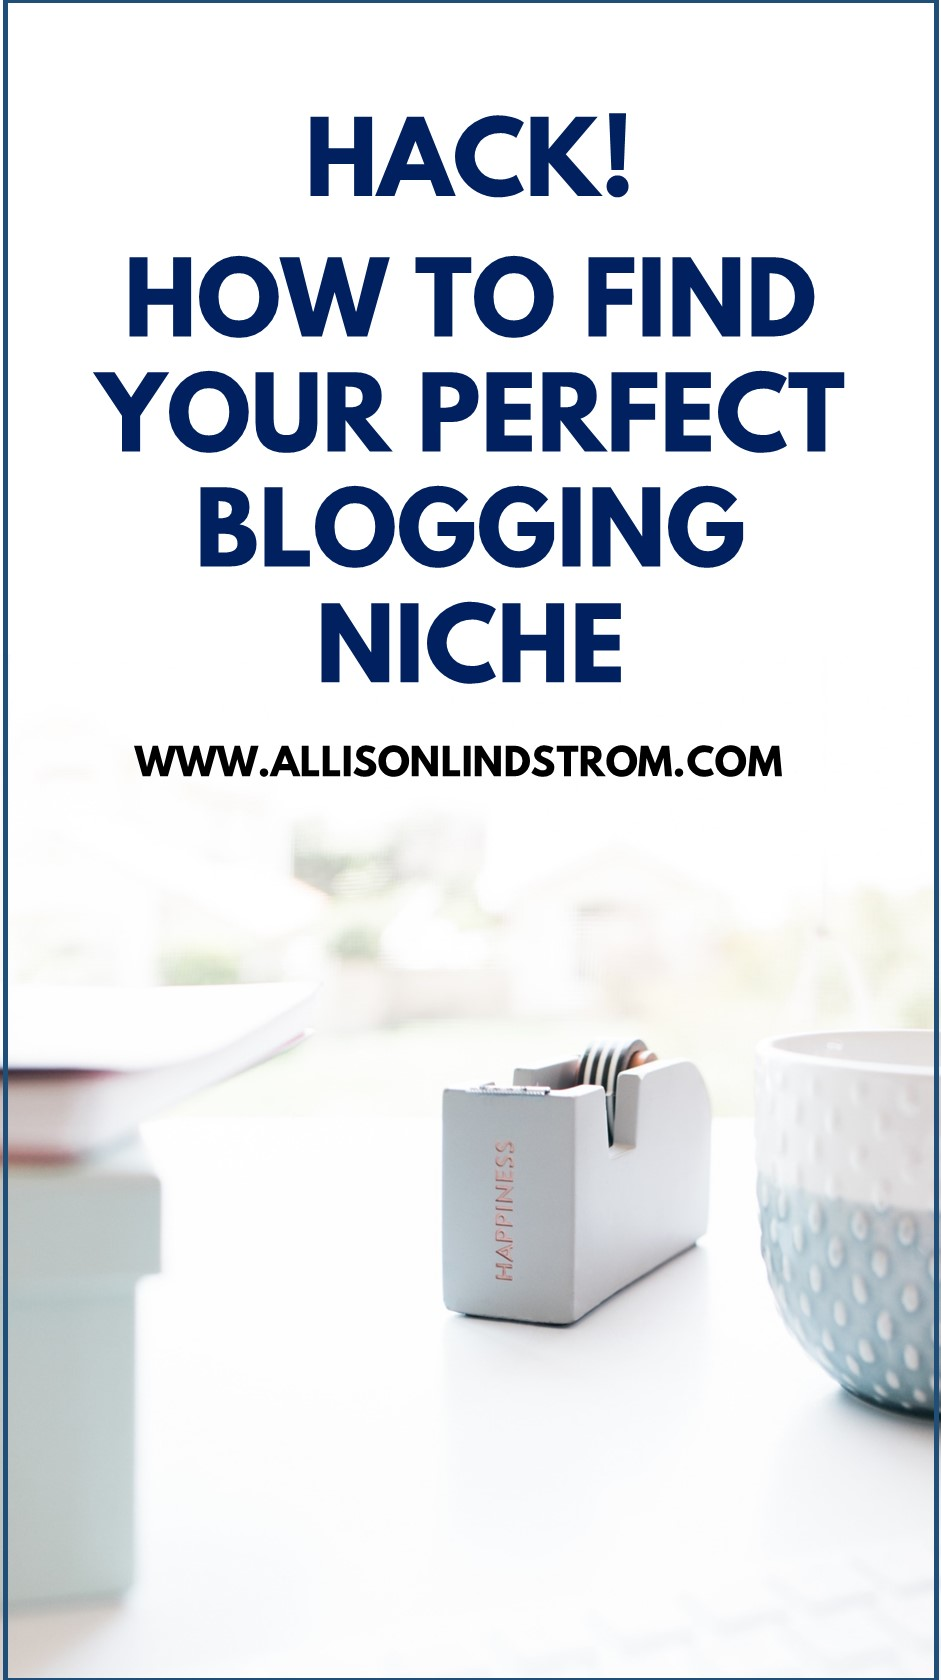 HACK! FIND YOUR BLOGGING NICHE ● STARTING A BLOG TIP-- Looking for a hack to find your blogging niche? There are so many things to do when you're starting a blog that choosing the perfect blog topic shouldn't be overwhelming. Here's my secret for getting the ball rolling if you're feeling stuck!